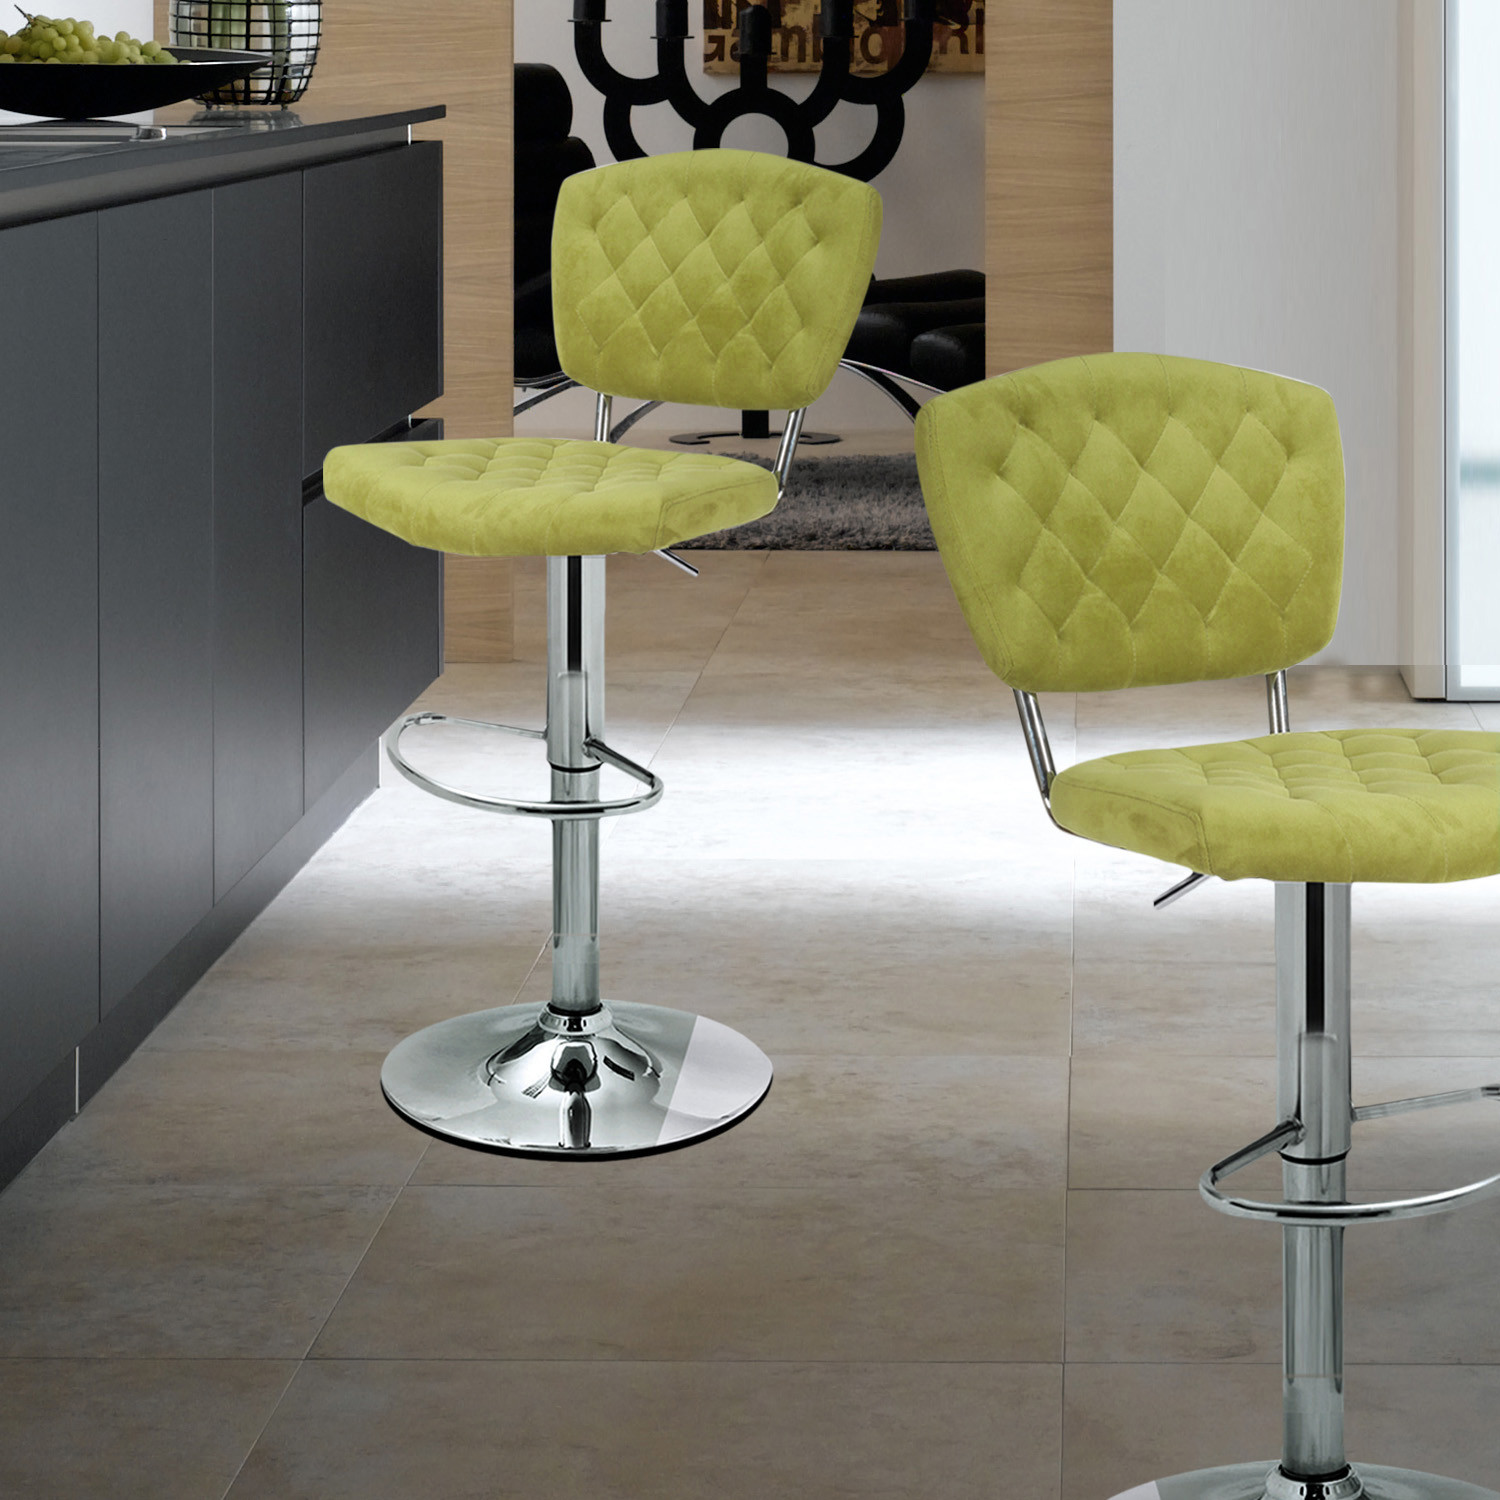 adjustable-height-swivel-bar-stool